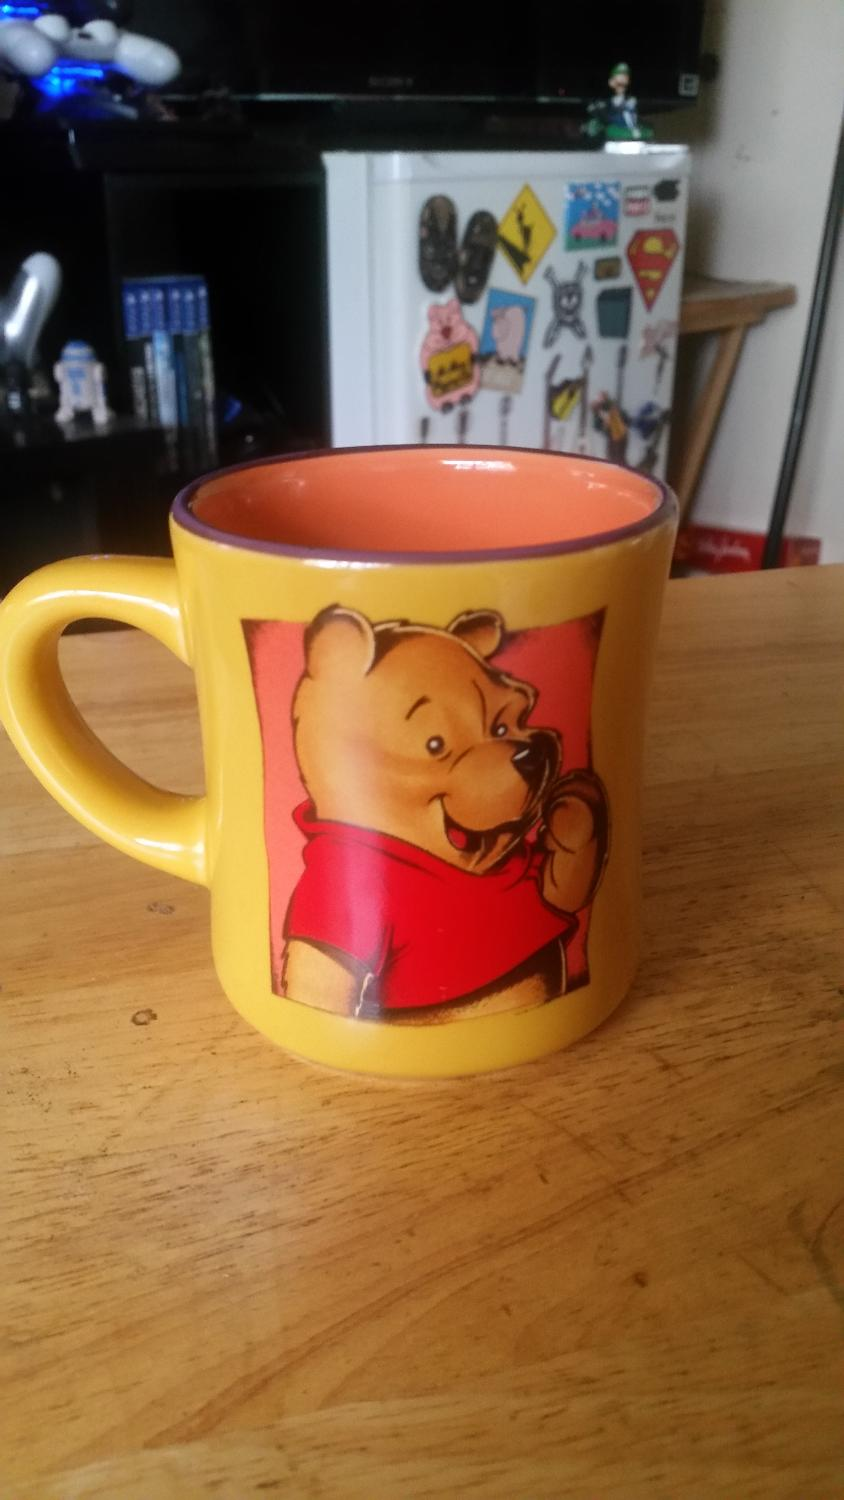 Find More Disney Winnie The Pooh Coffee Mug For Sale At Up